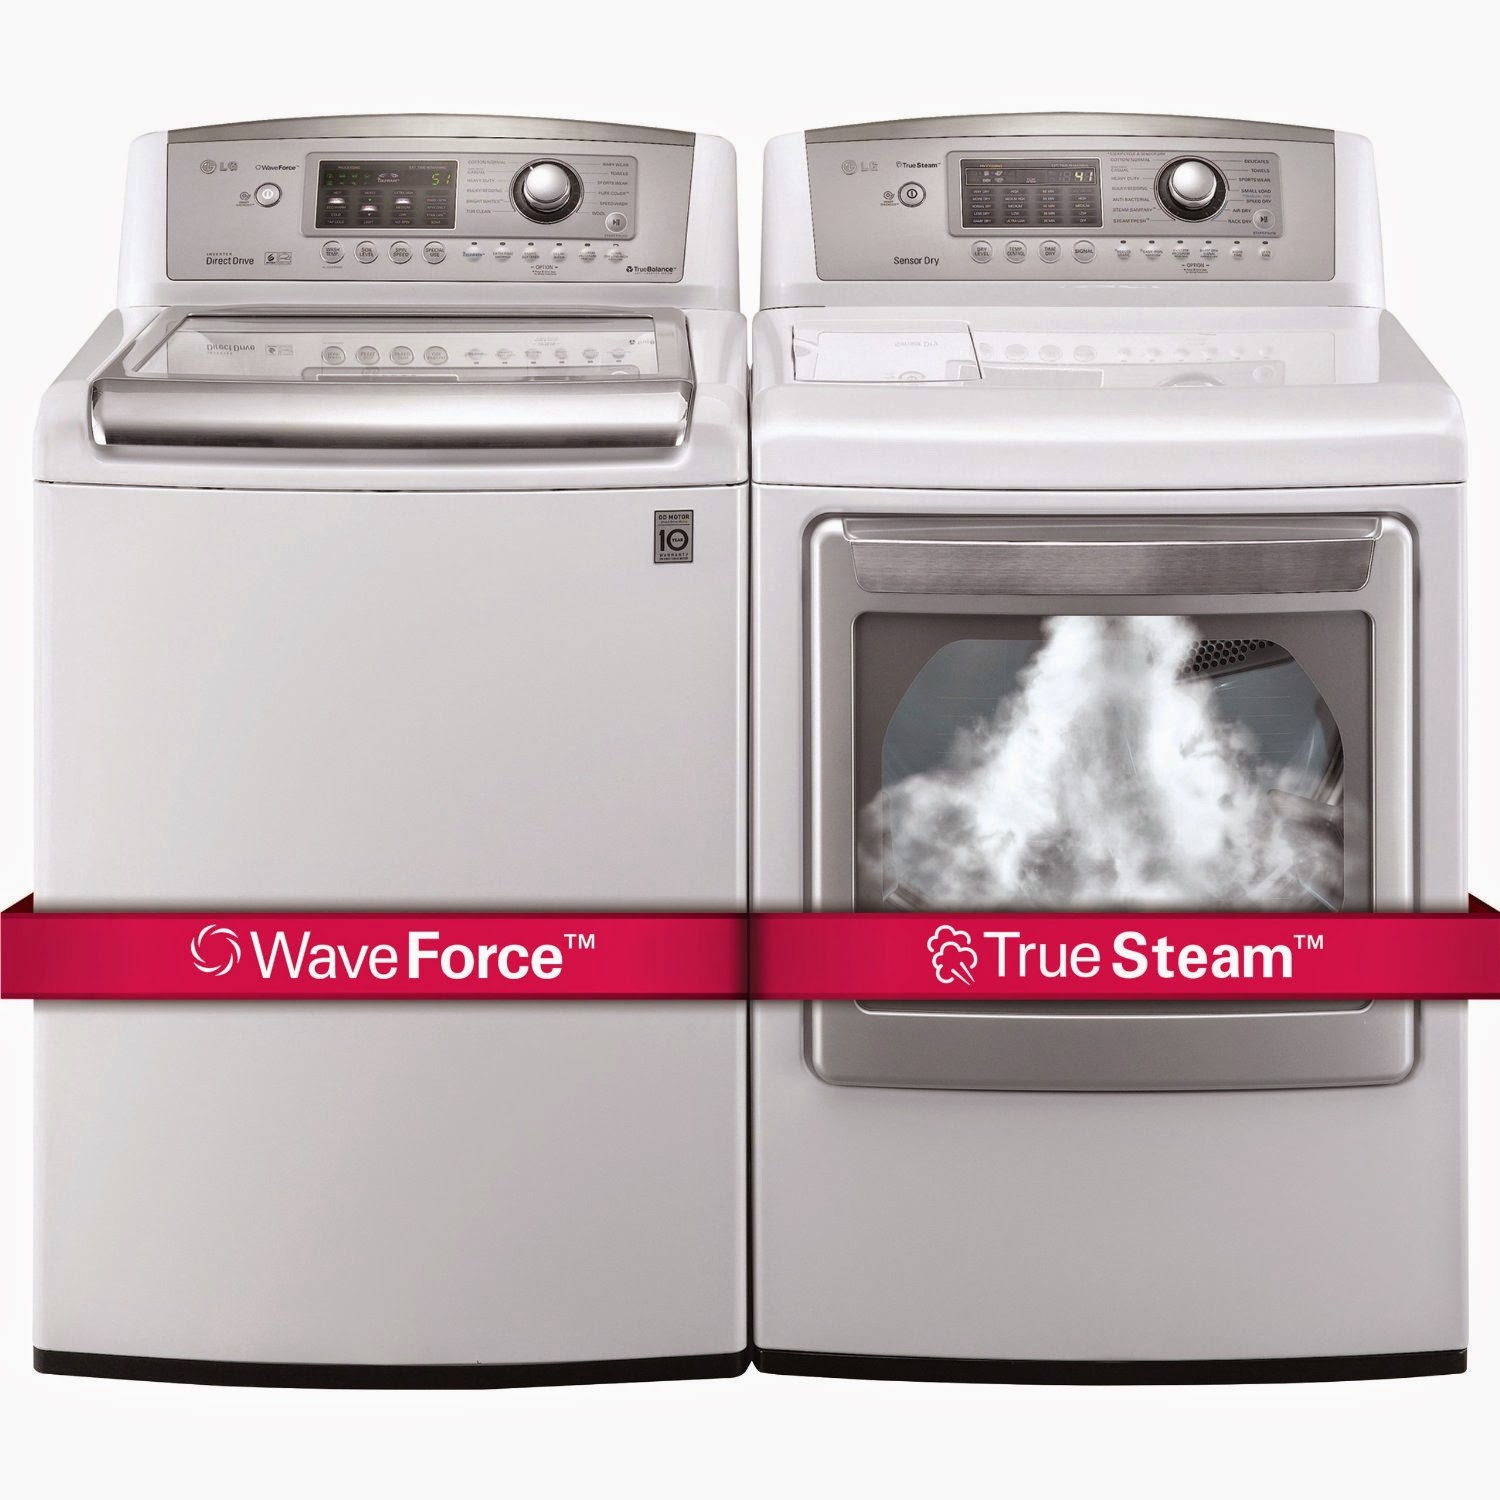 Lg all in one washer and dryer reviews - Lg All In One Washer And Dryer Reviews 55